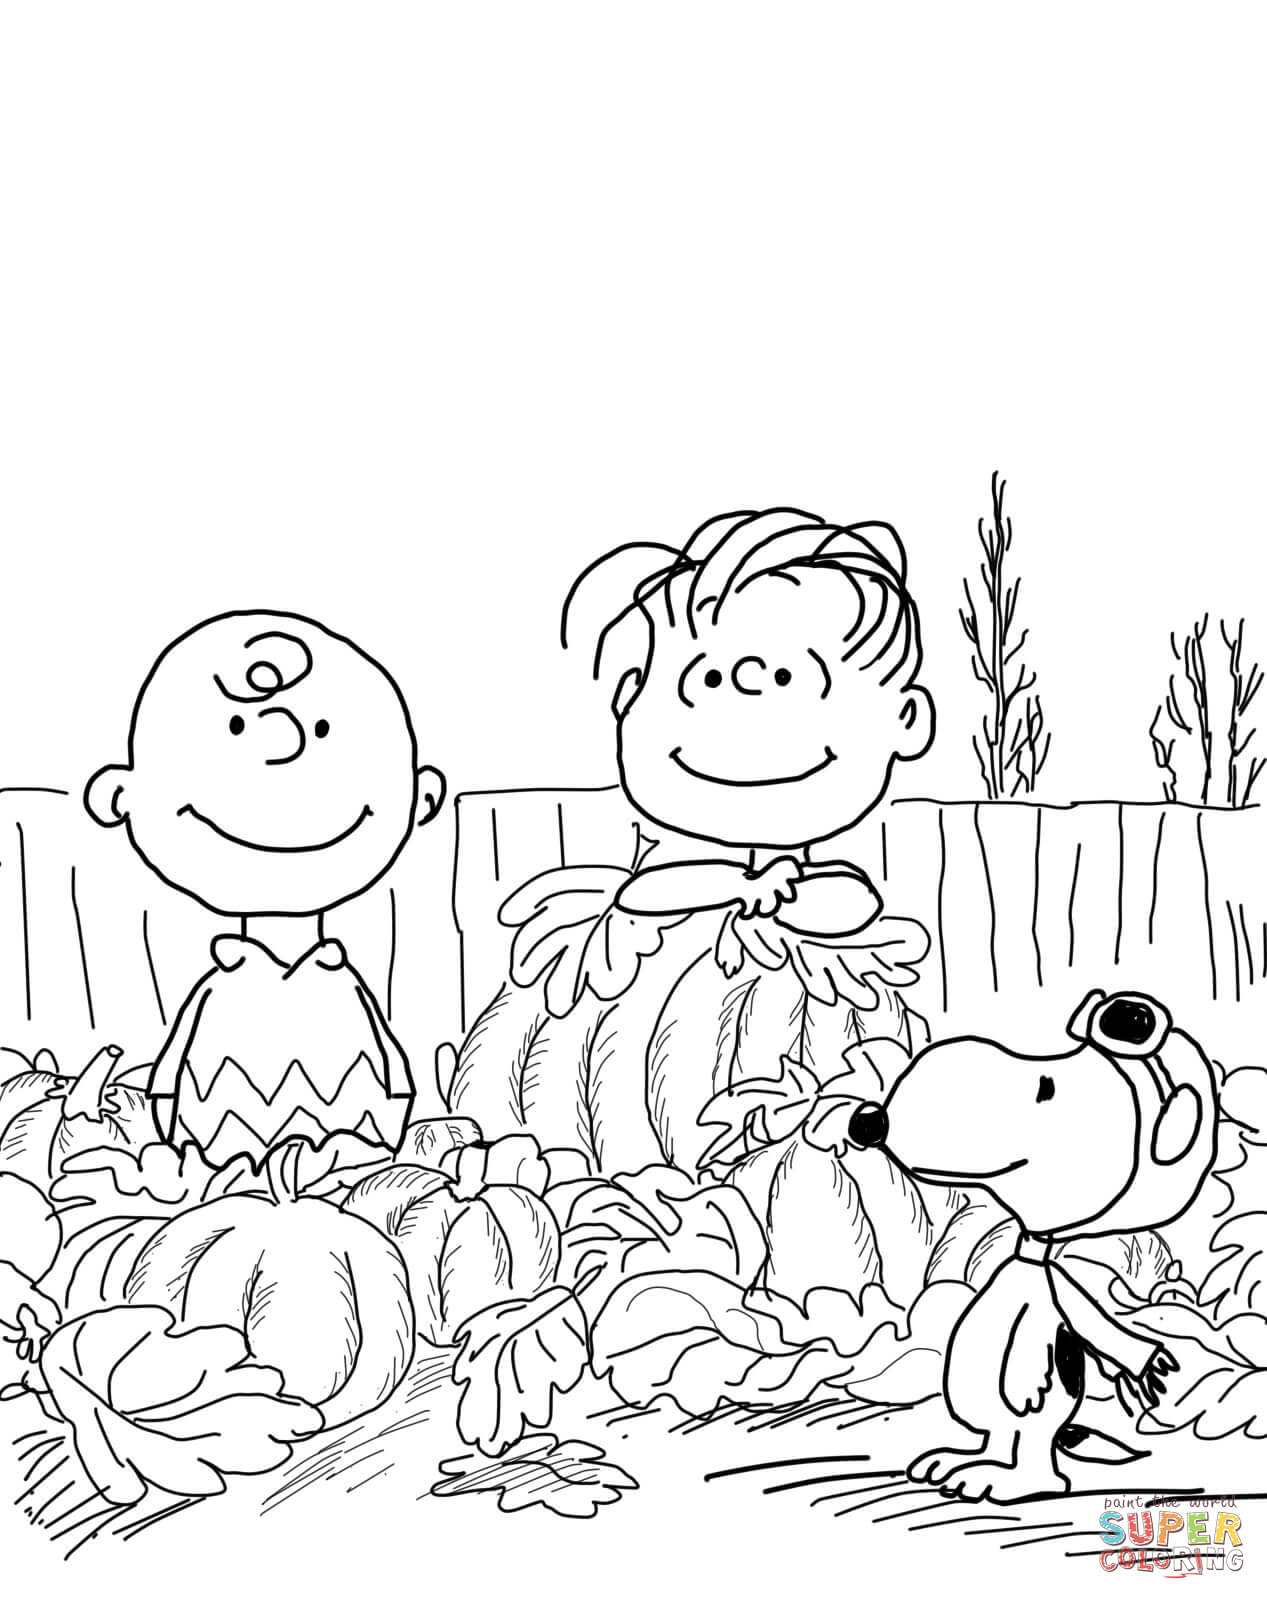 Great Pumpkin Charlie Brown Coloring Page   Free Printable Coloring - Free Printable Charlie Brown Halloween Coloring Pages